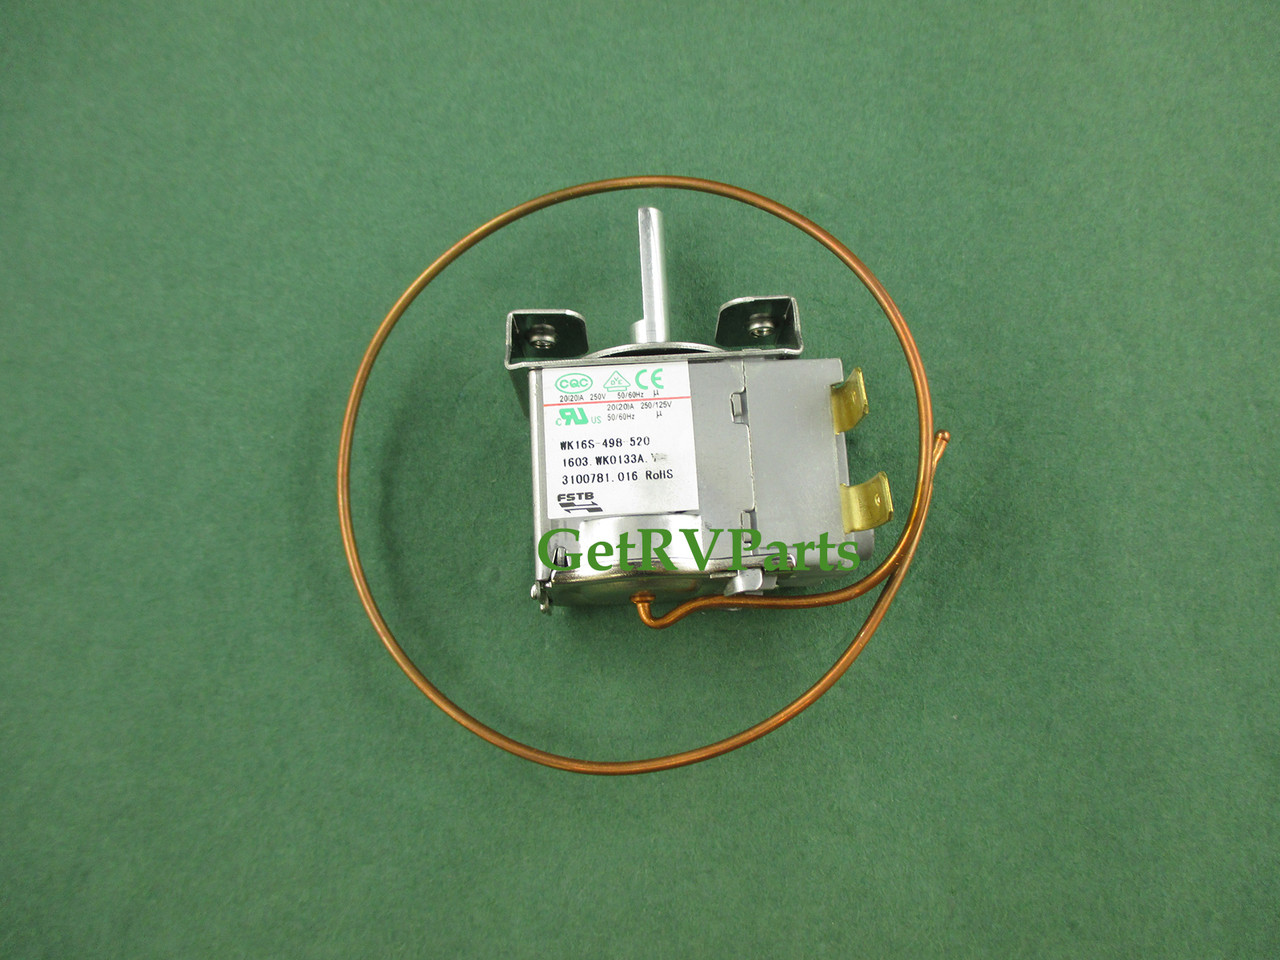 dometic 3313107000 rv air conditioner t stat thermostat image 1 loading zoom [ 1280 x 960 Pixel ]